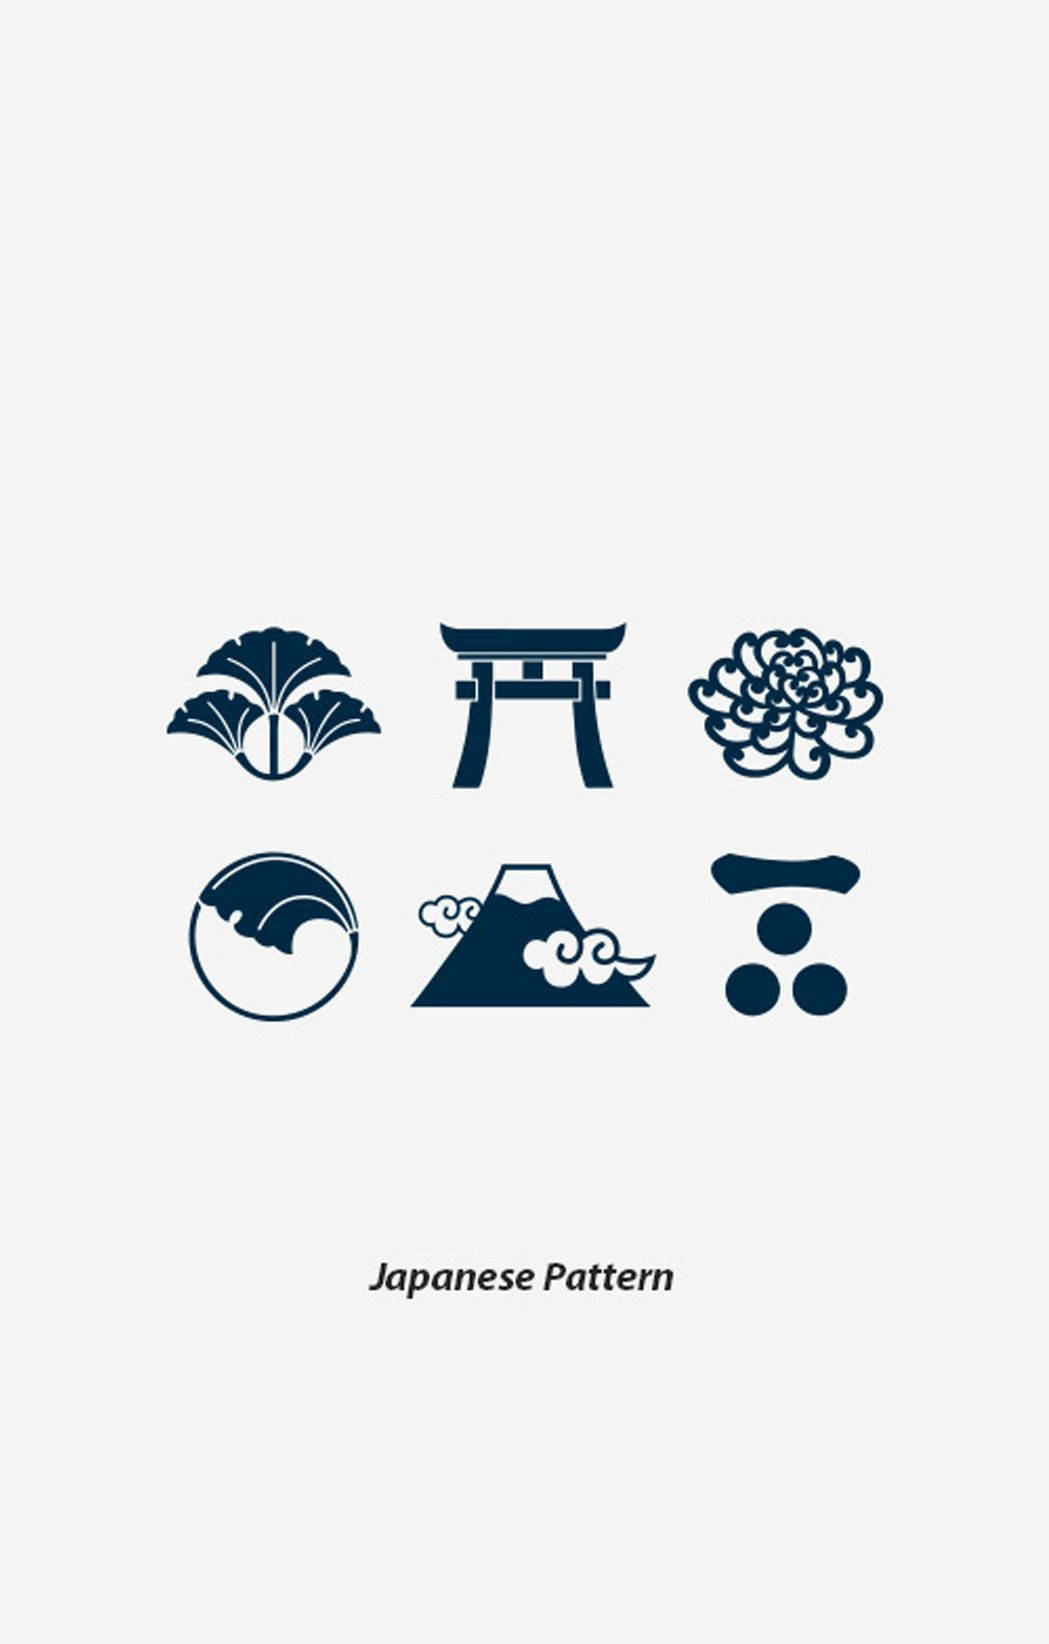 Scrittura Stile Giapponese Japanese Pattern Temporary Tattoo Bkbt Concept This Is Art